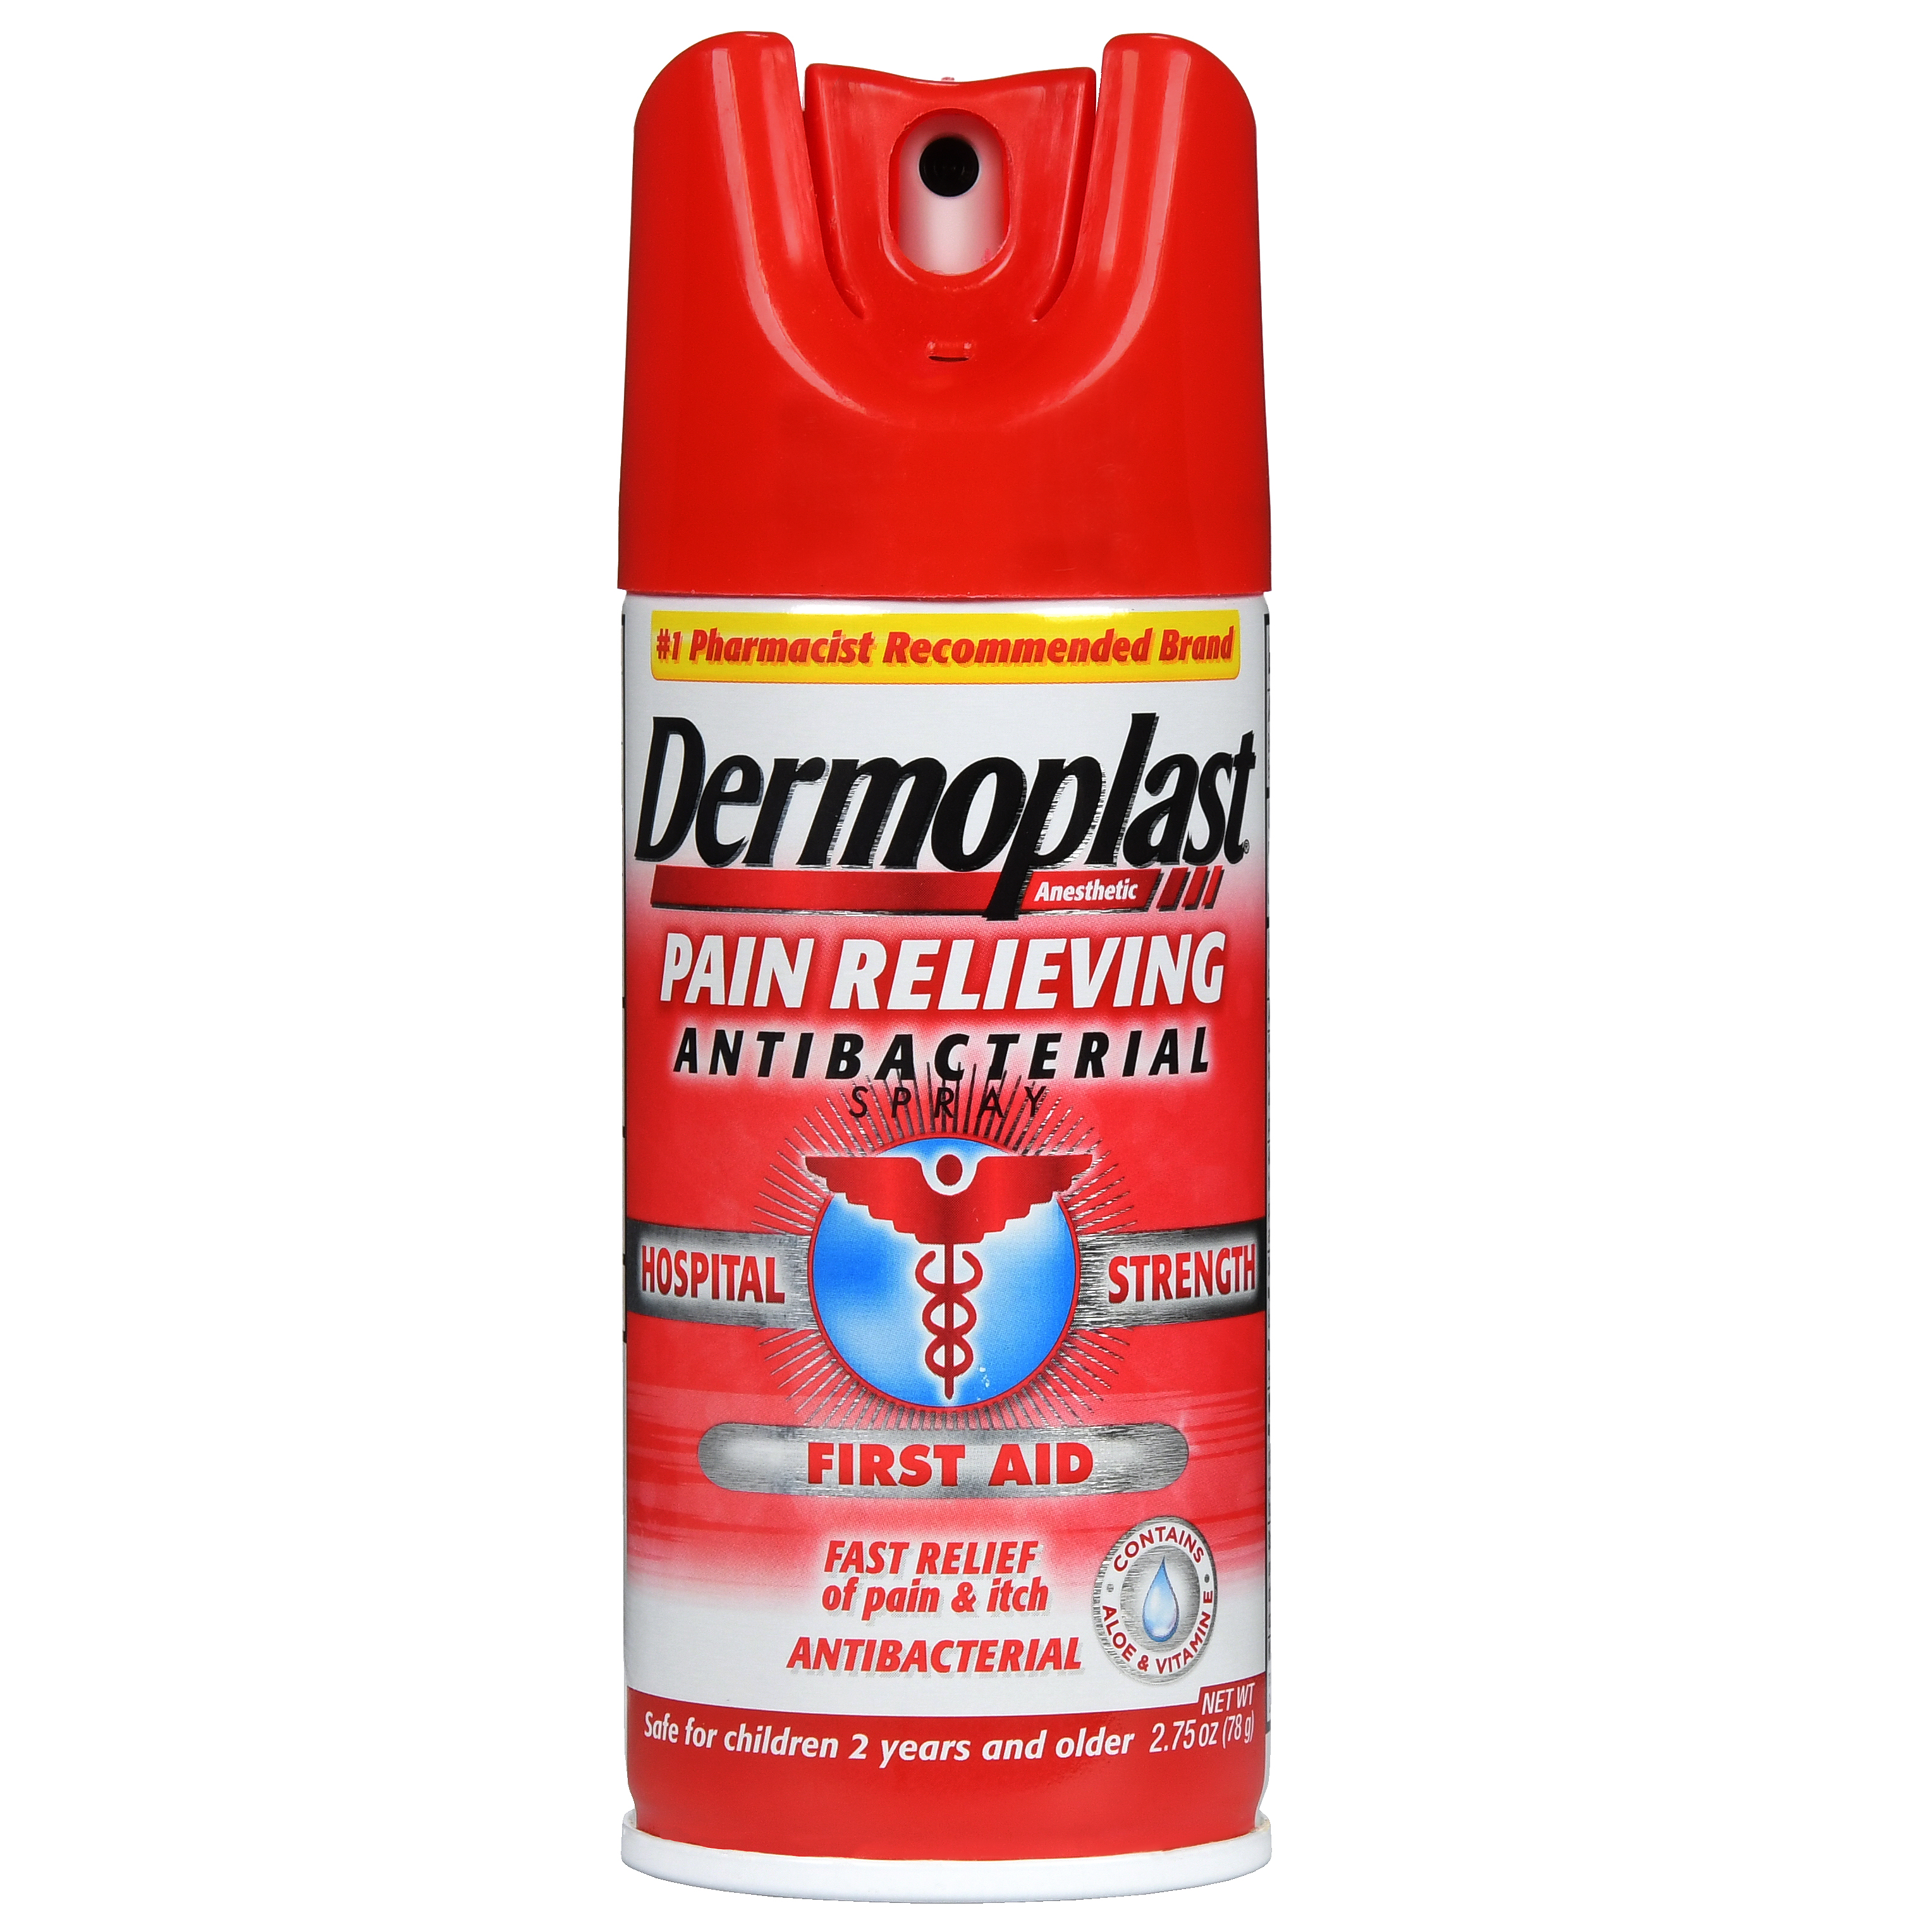 Dermoplast Antibacterial Pain Relieving Spray, 2.75 oz